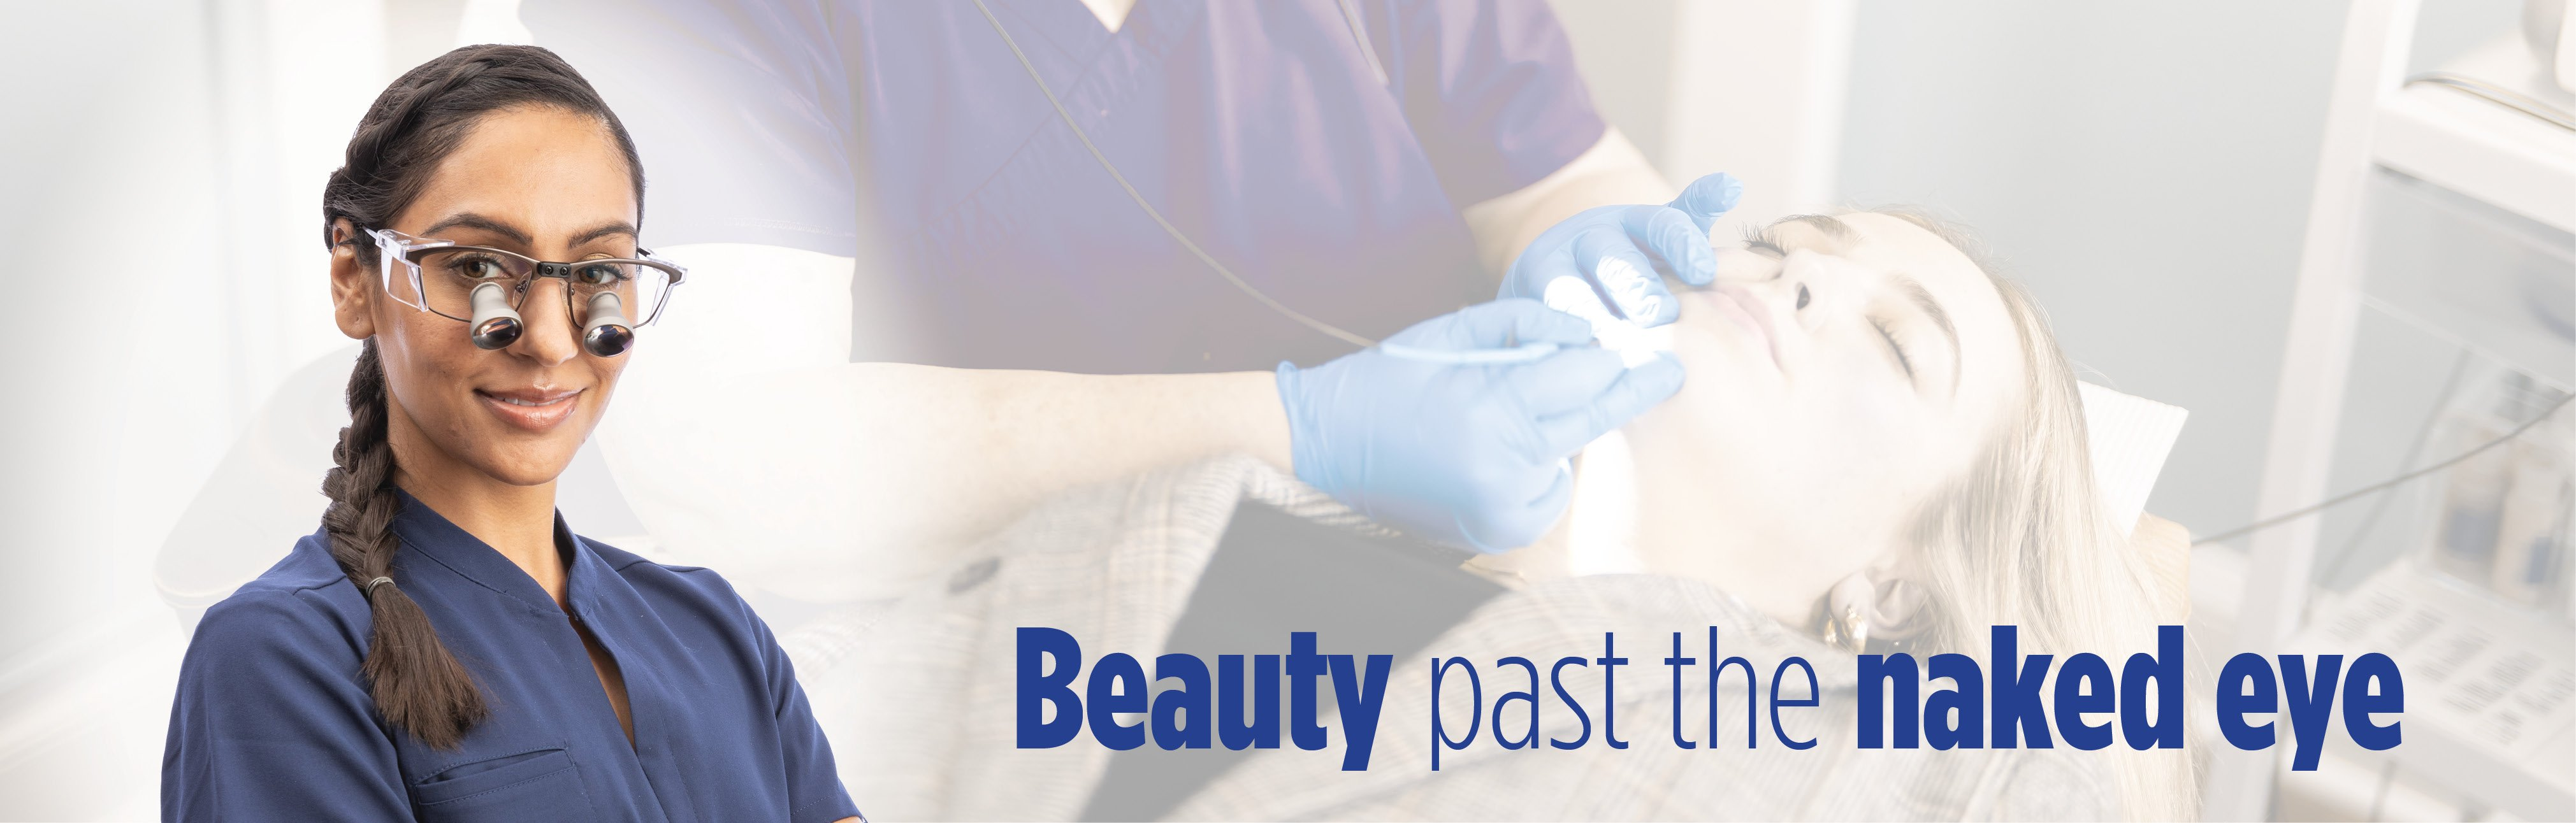 Beauty landing page banner_no boarder_4-9-2021